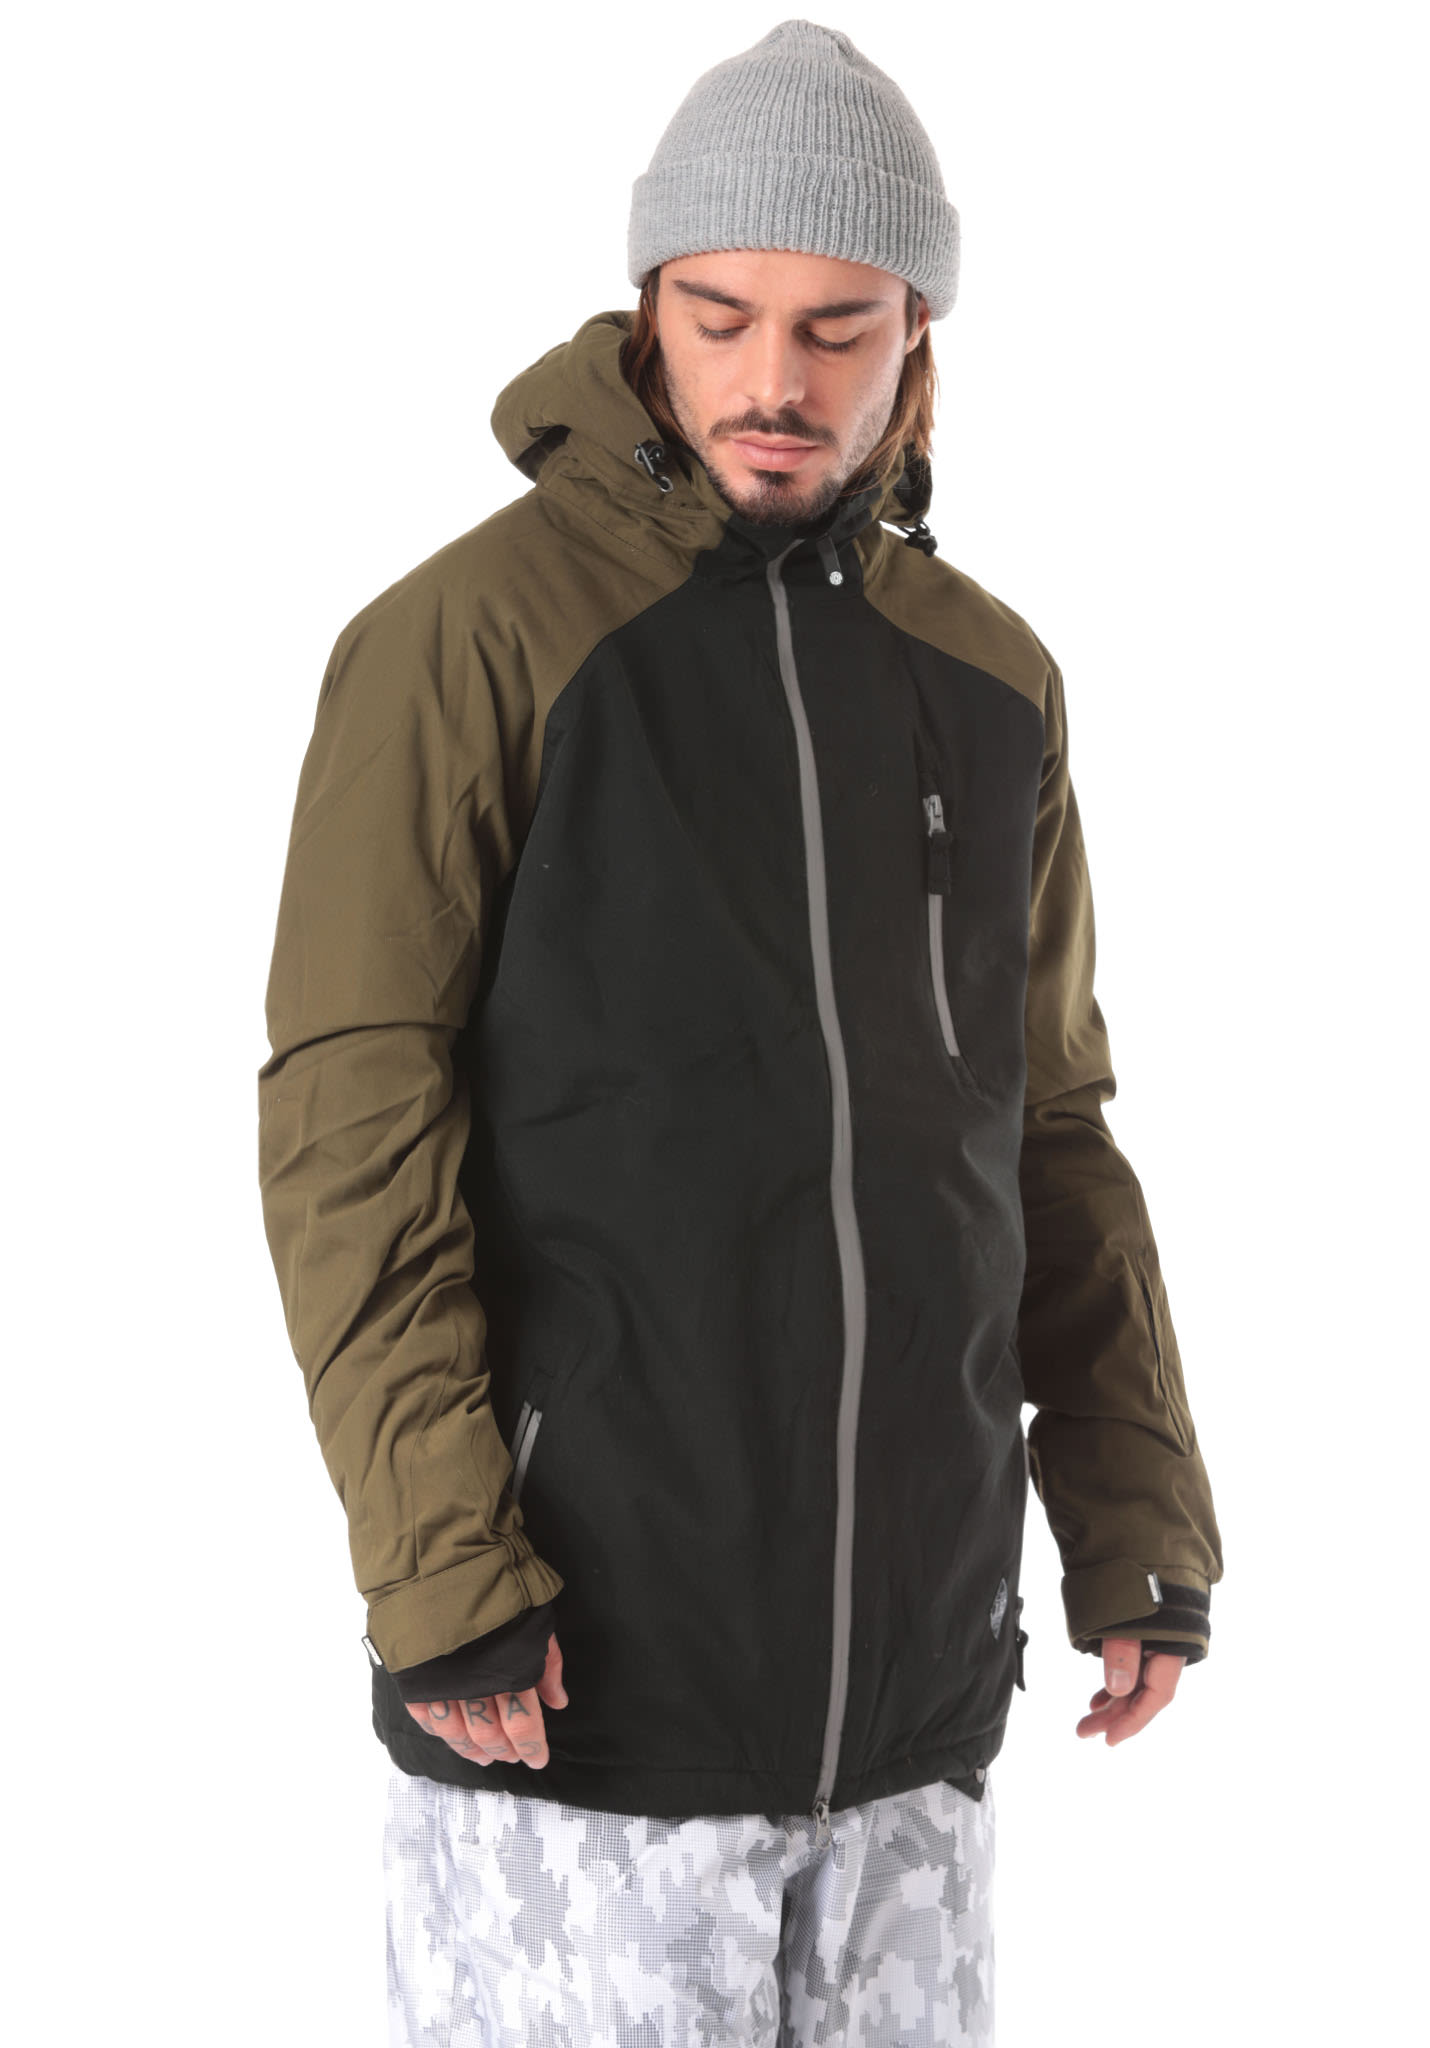 Light Slice - Snowboard Jacket for Men - Black - Planet Sports 78ddbdef12